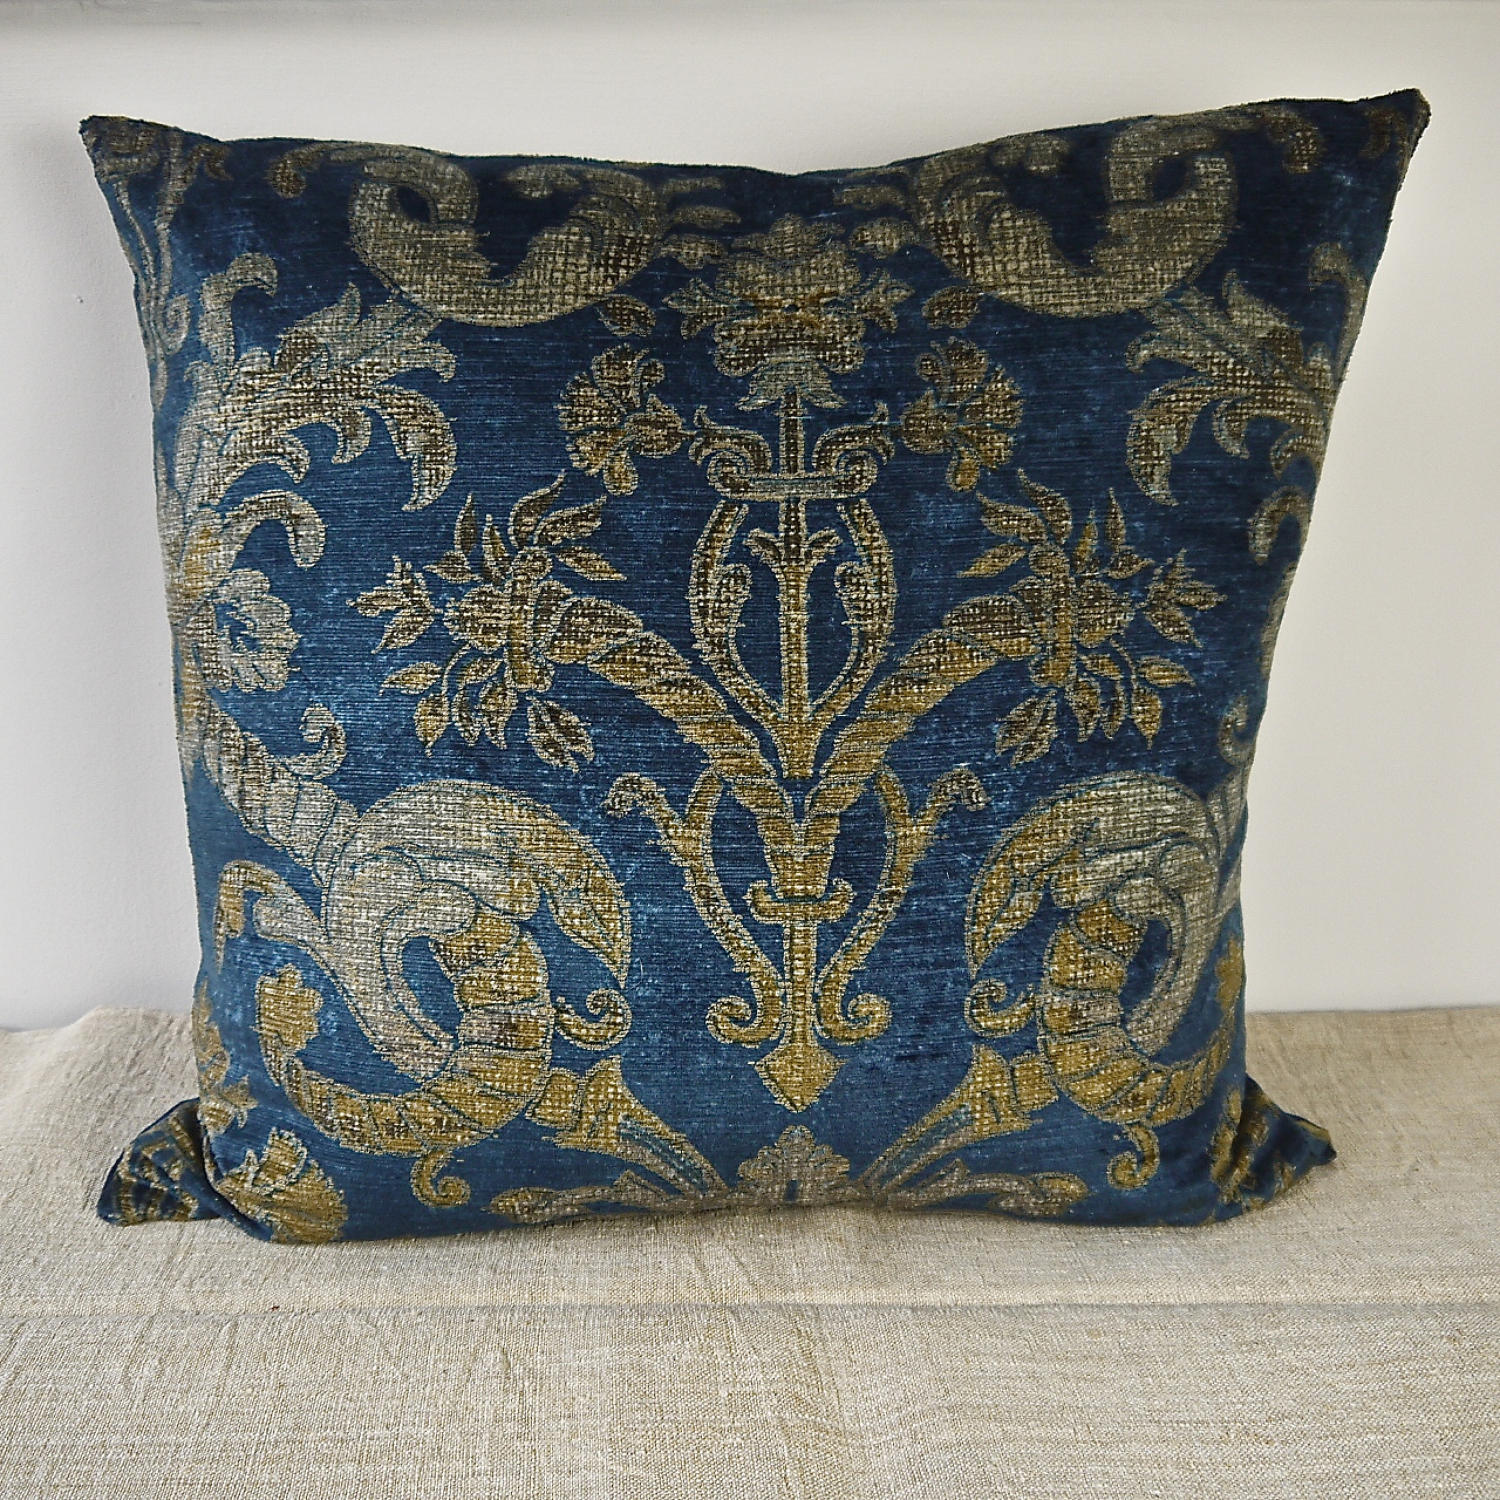 Circa 1950s French blue velvet large cushion